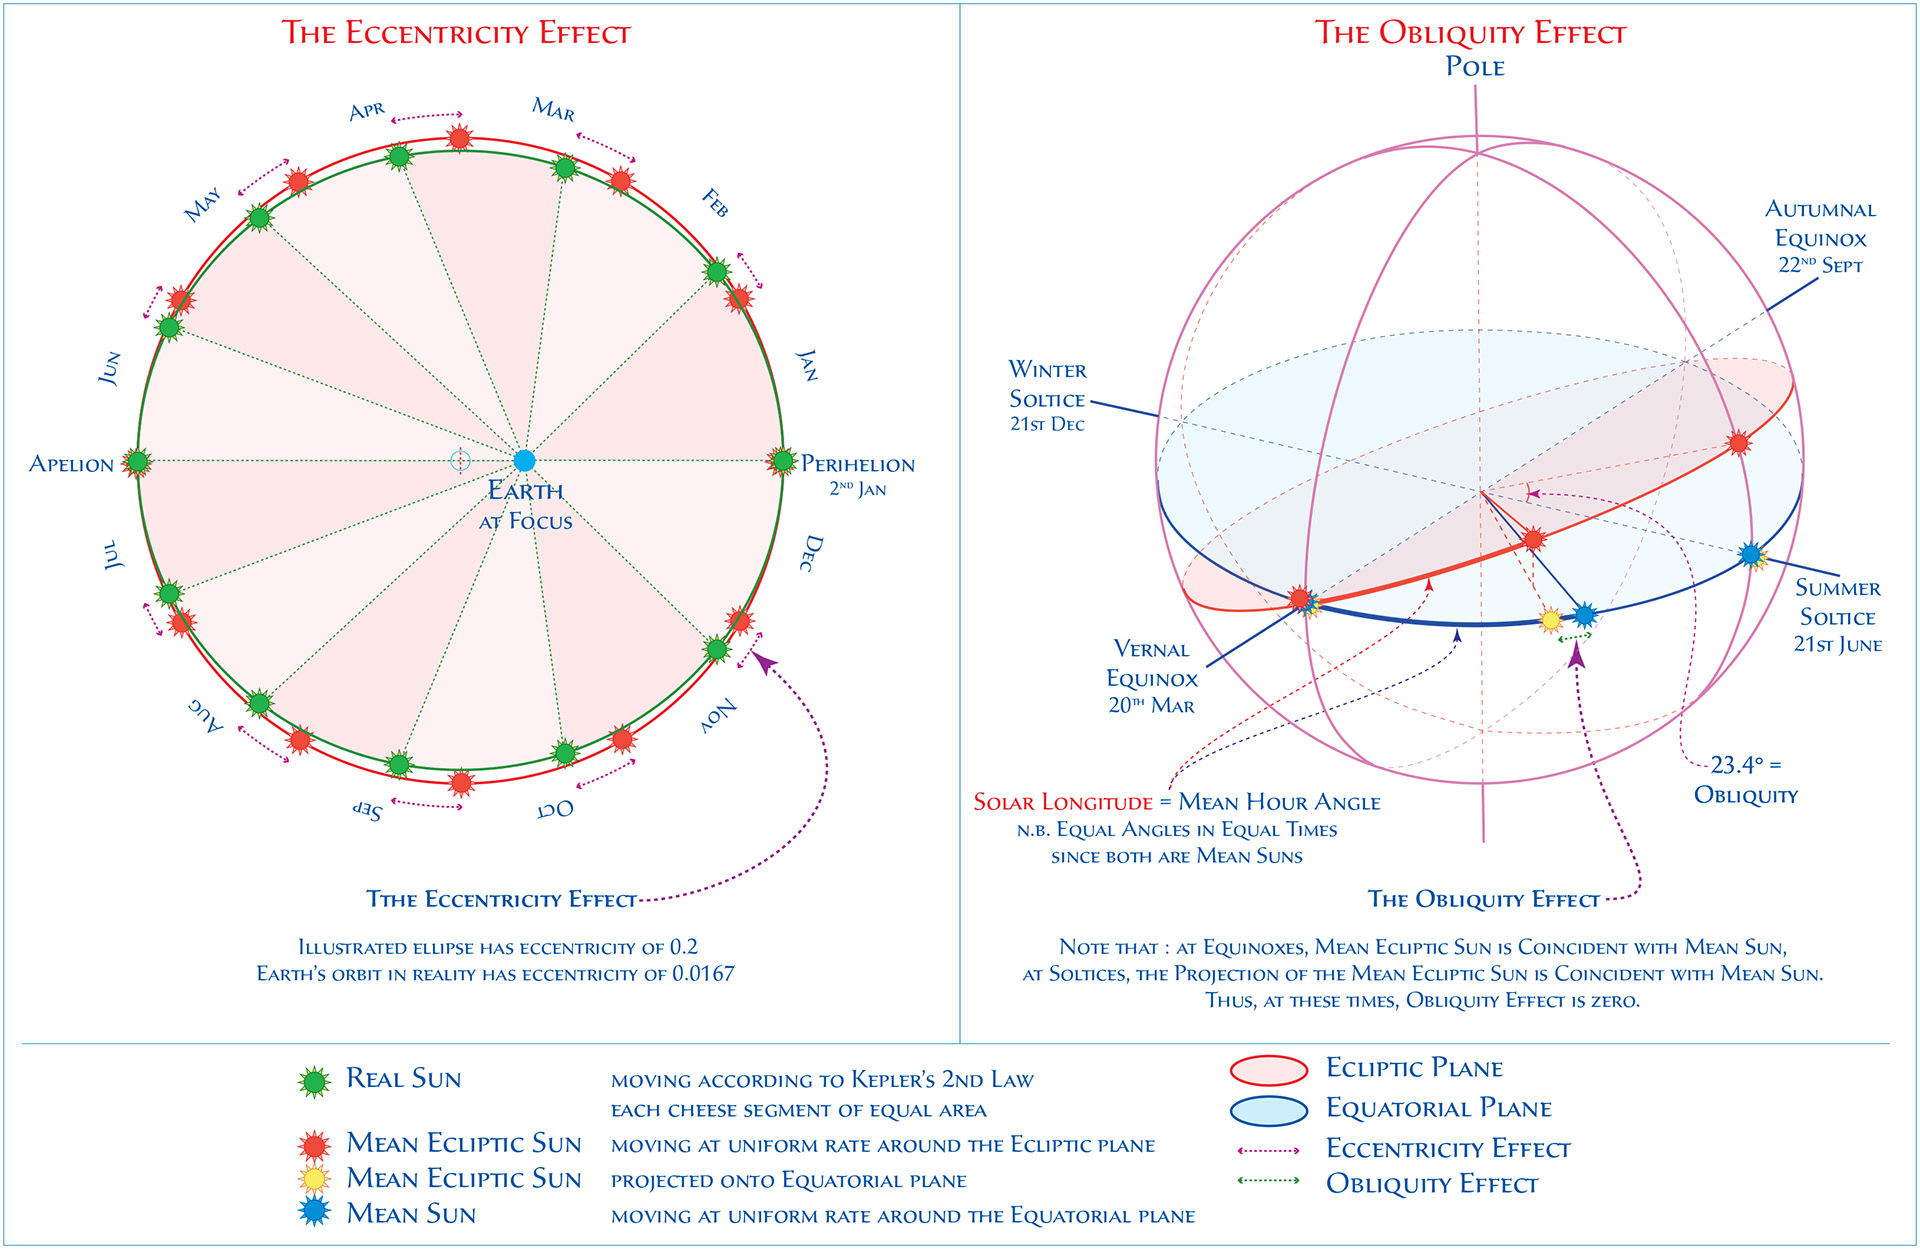 click to enlarge : the left graph uses the astronomical convention for the  eot